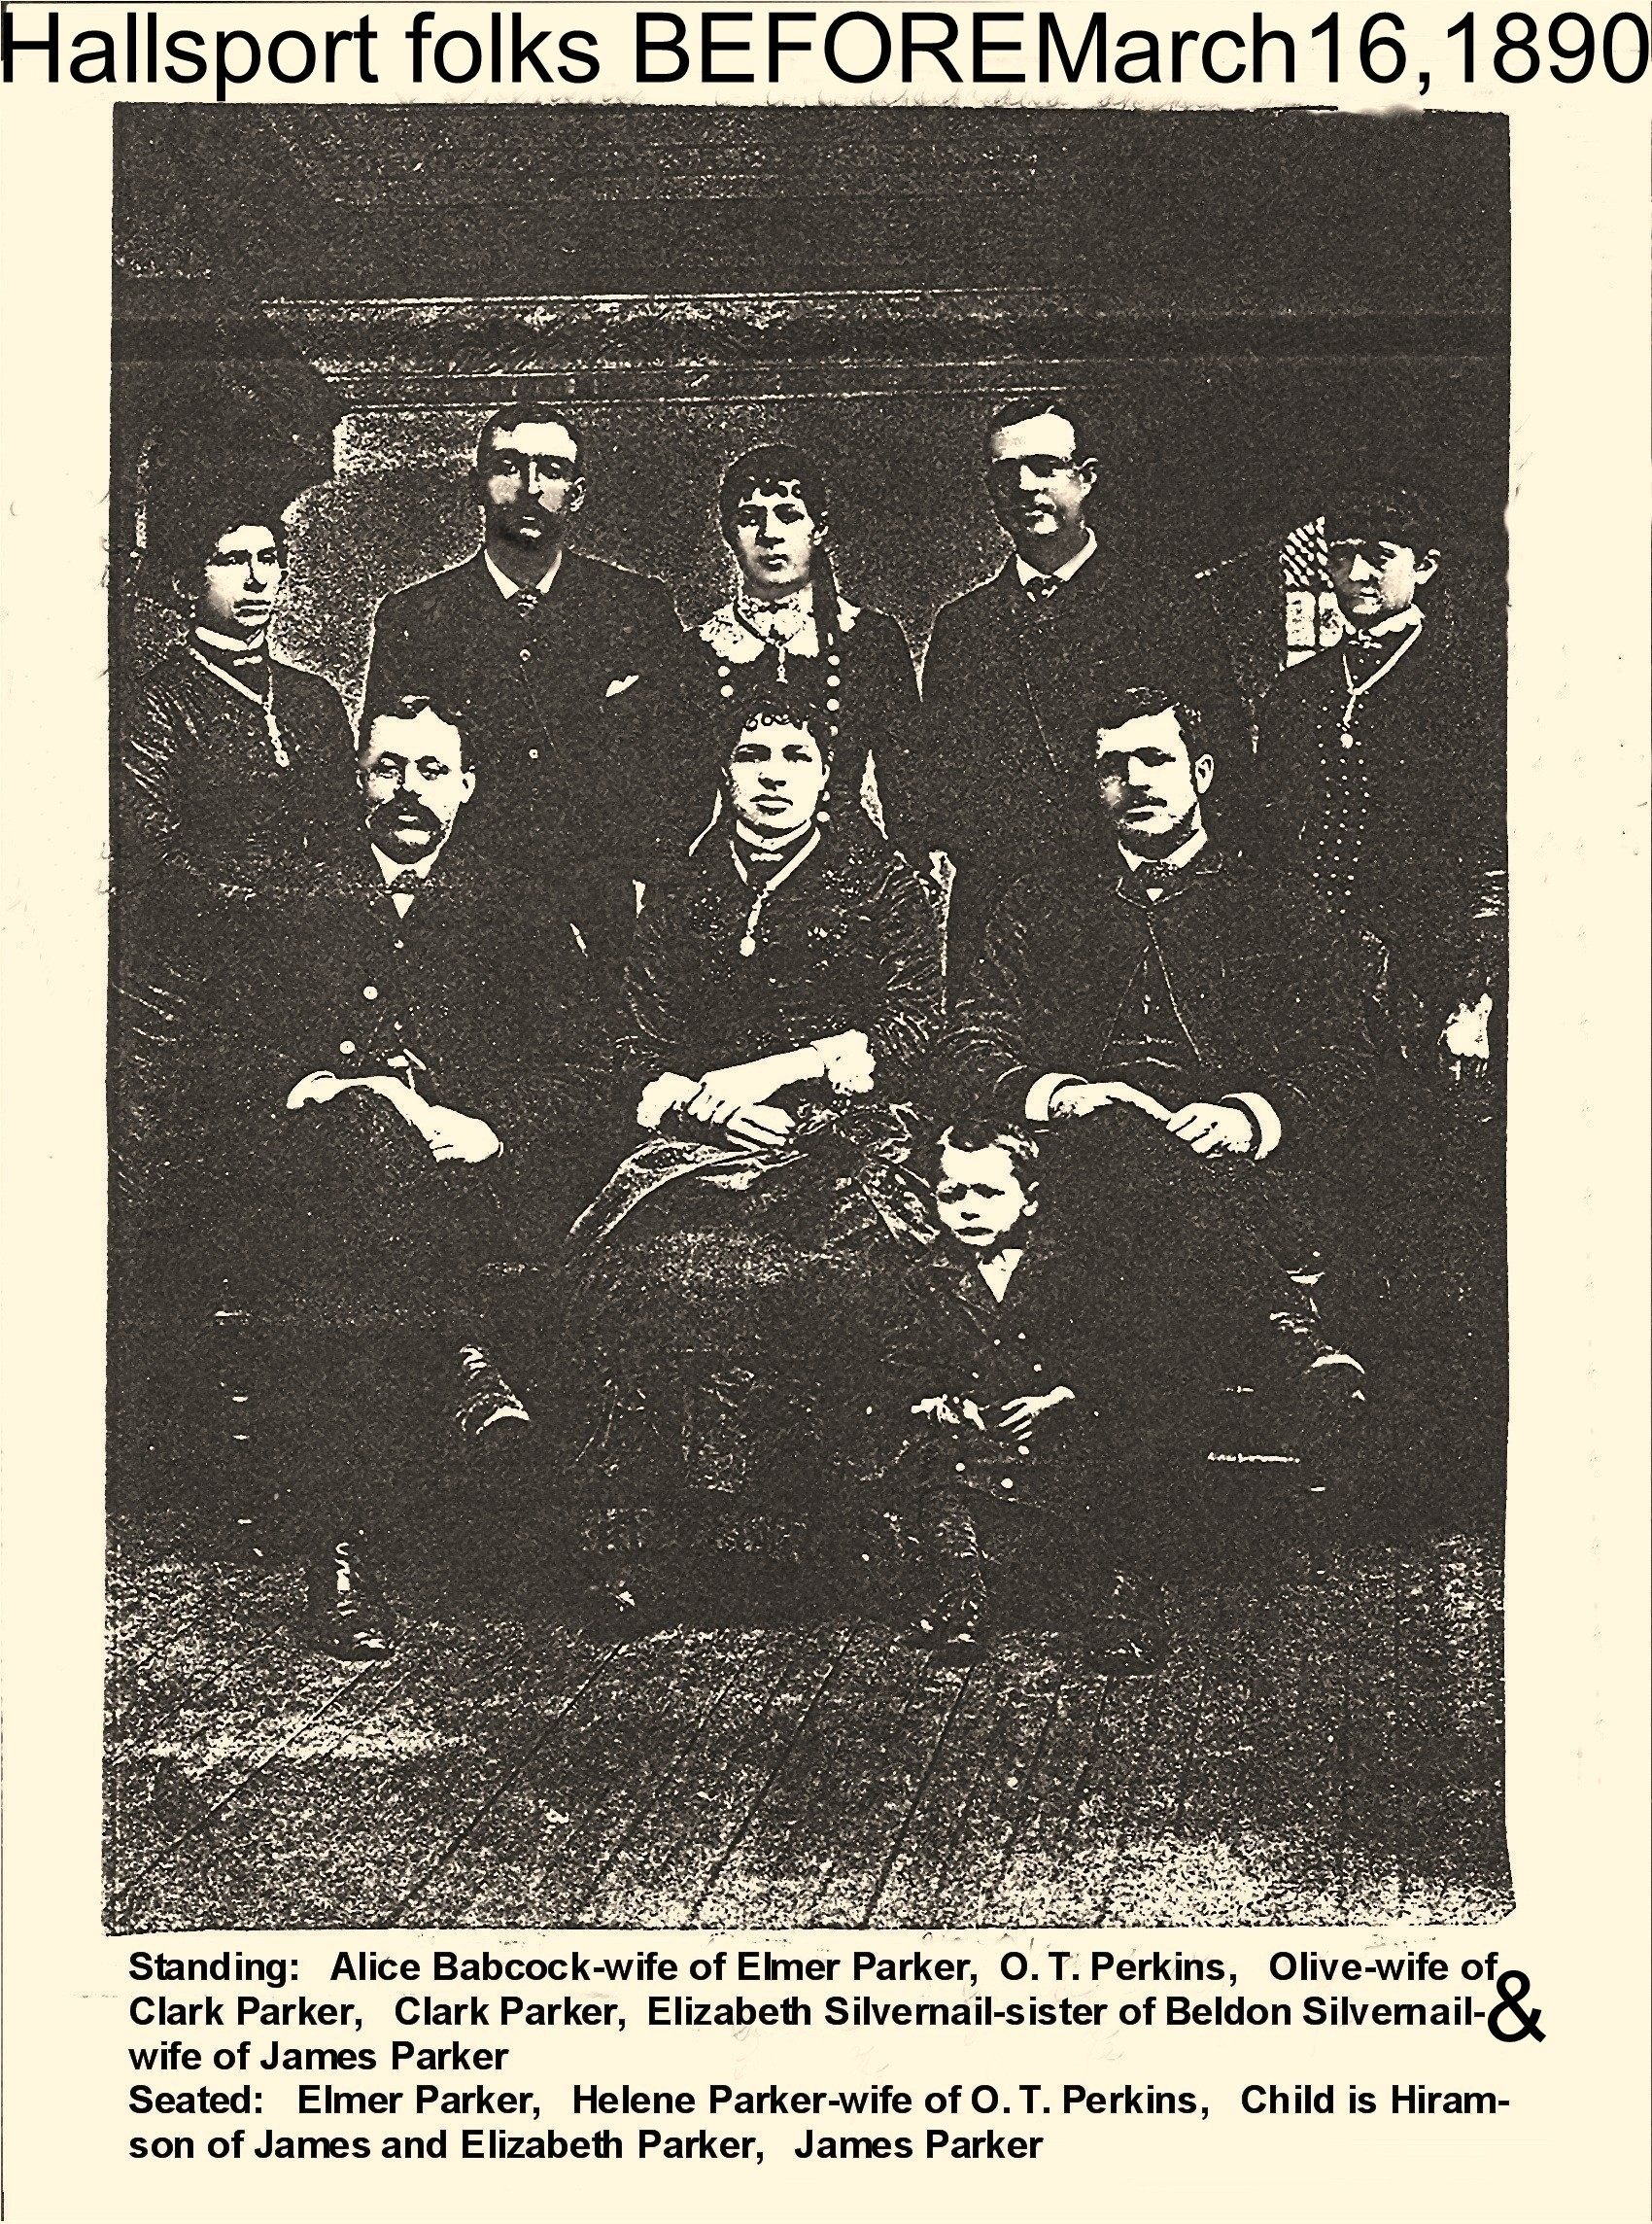 hallsport_folks_before_3-1890